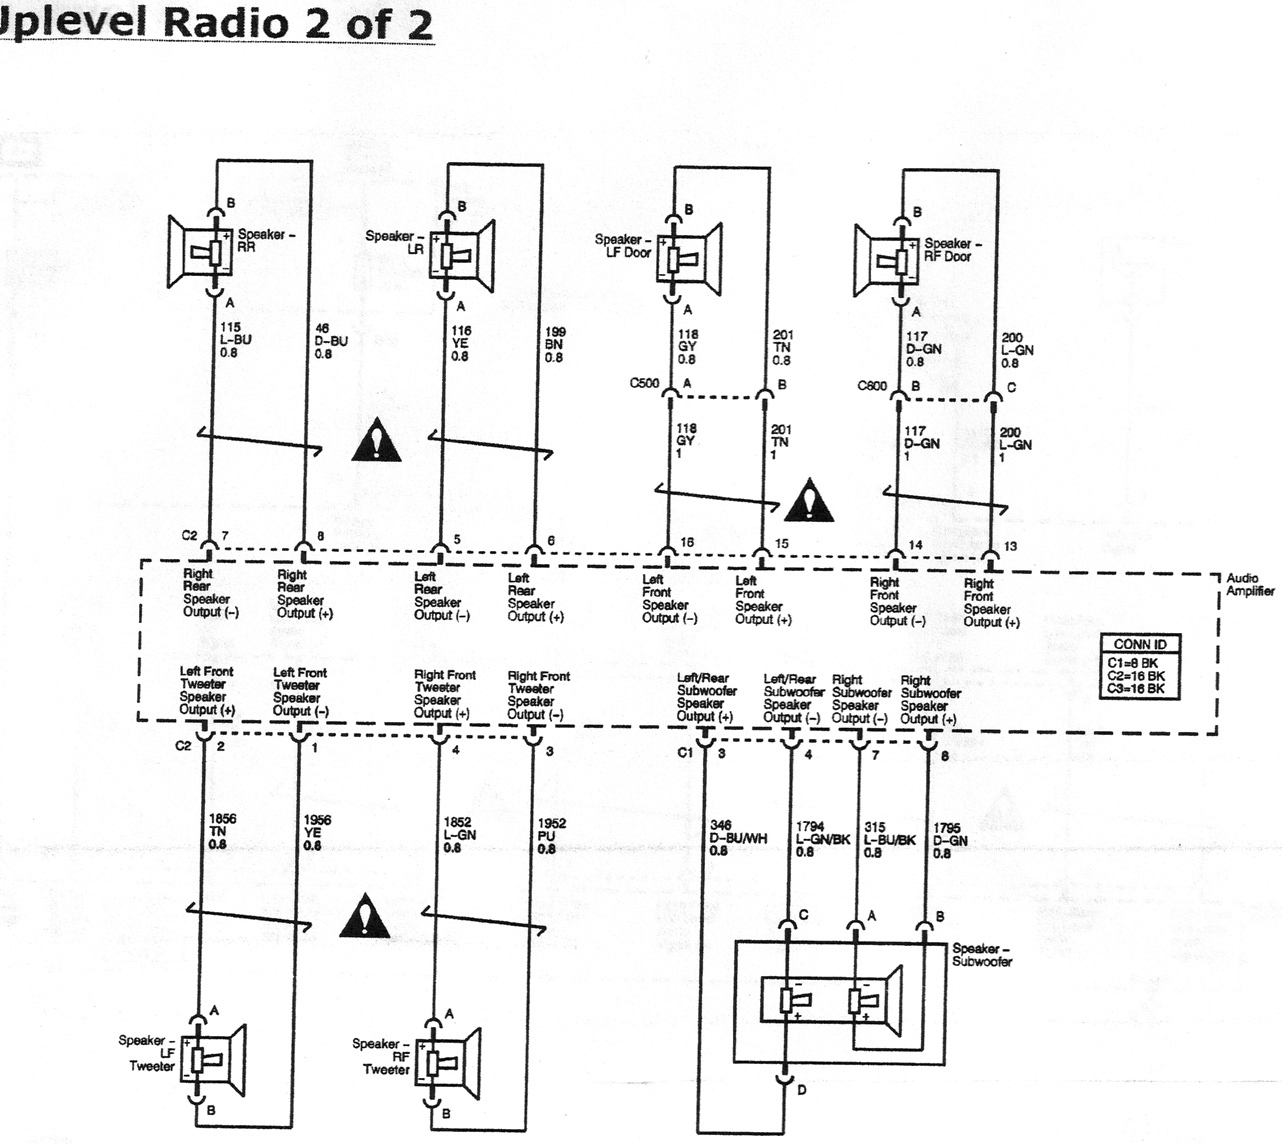 Monsoon Wiring Diagram 2006 Grand Prix Trusted Diagrams 1997 Pontiac Question Saturn Sky Forums Forum Rh Skyroadster Com Wire Connection For Se Radio